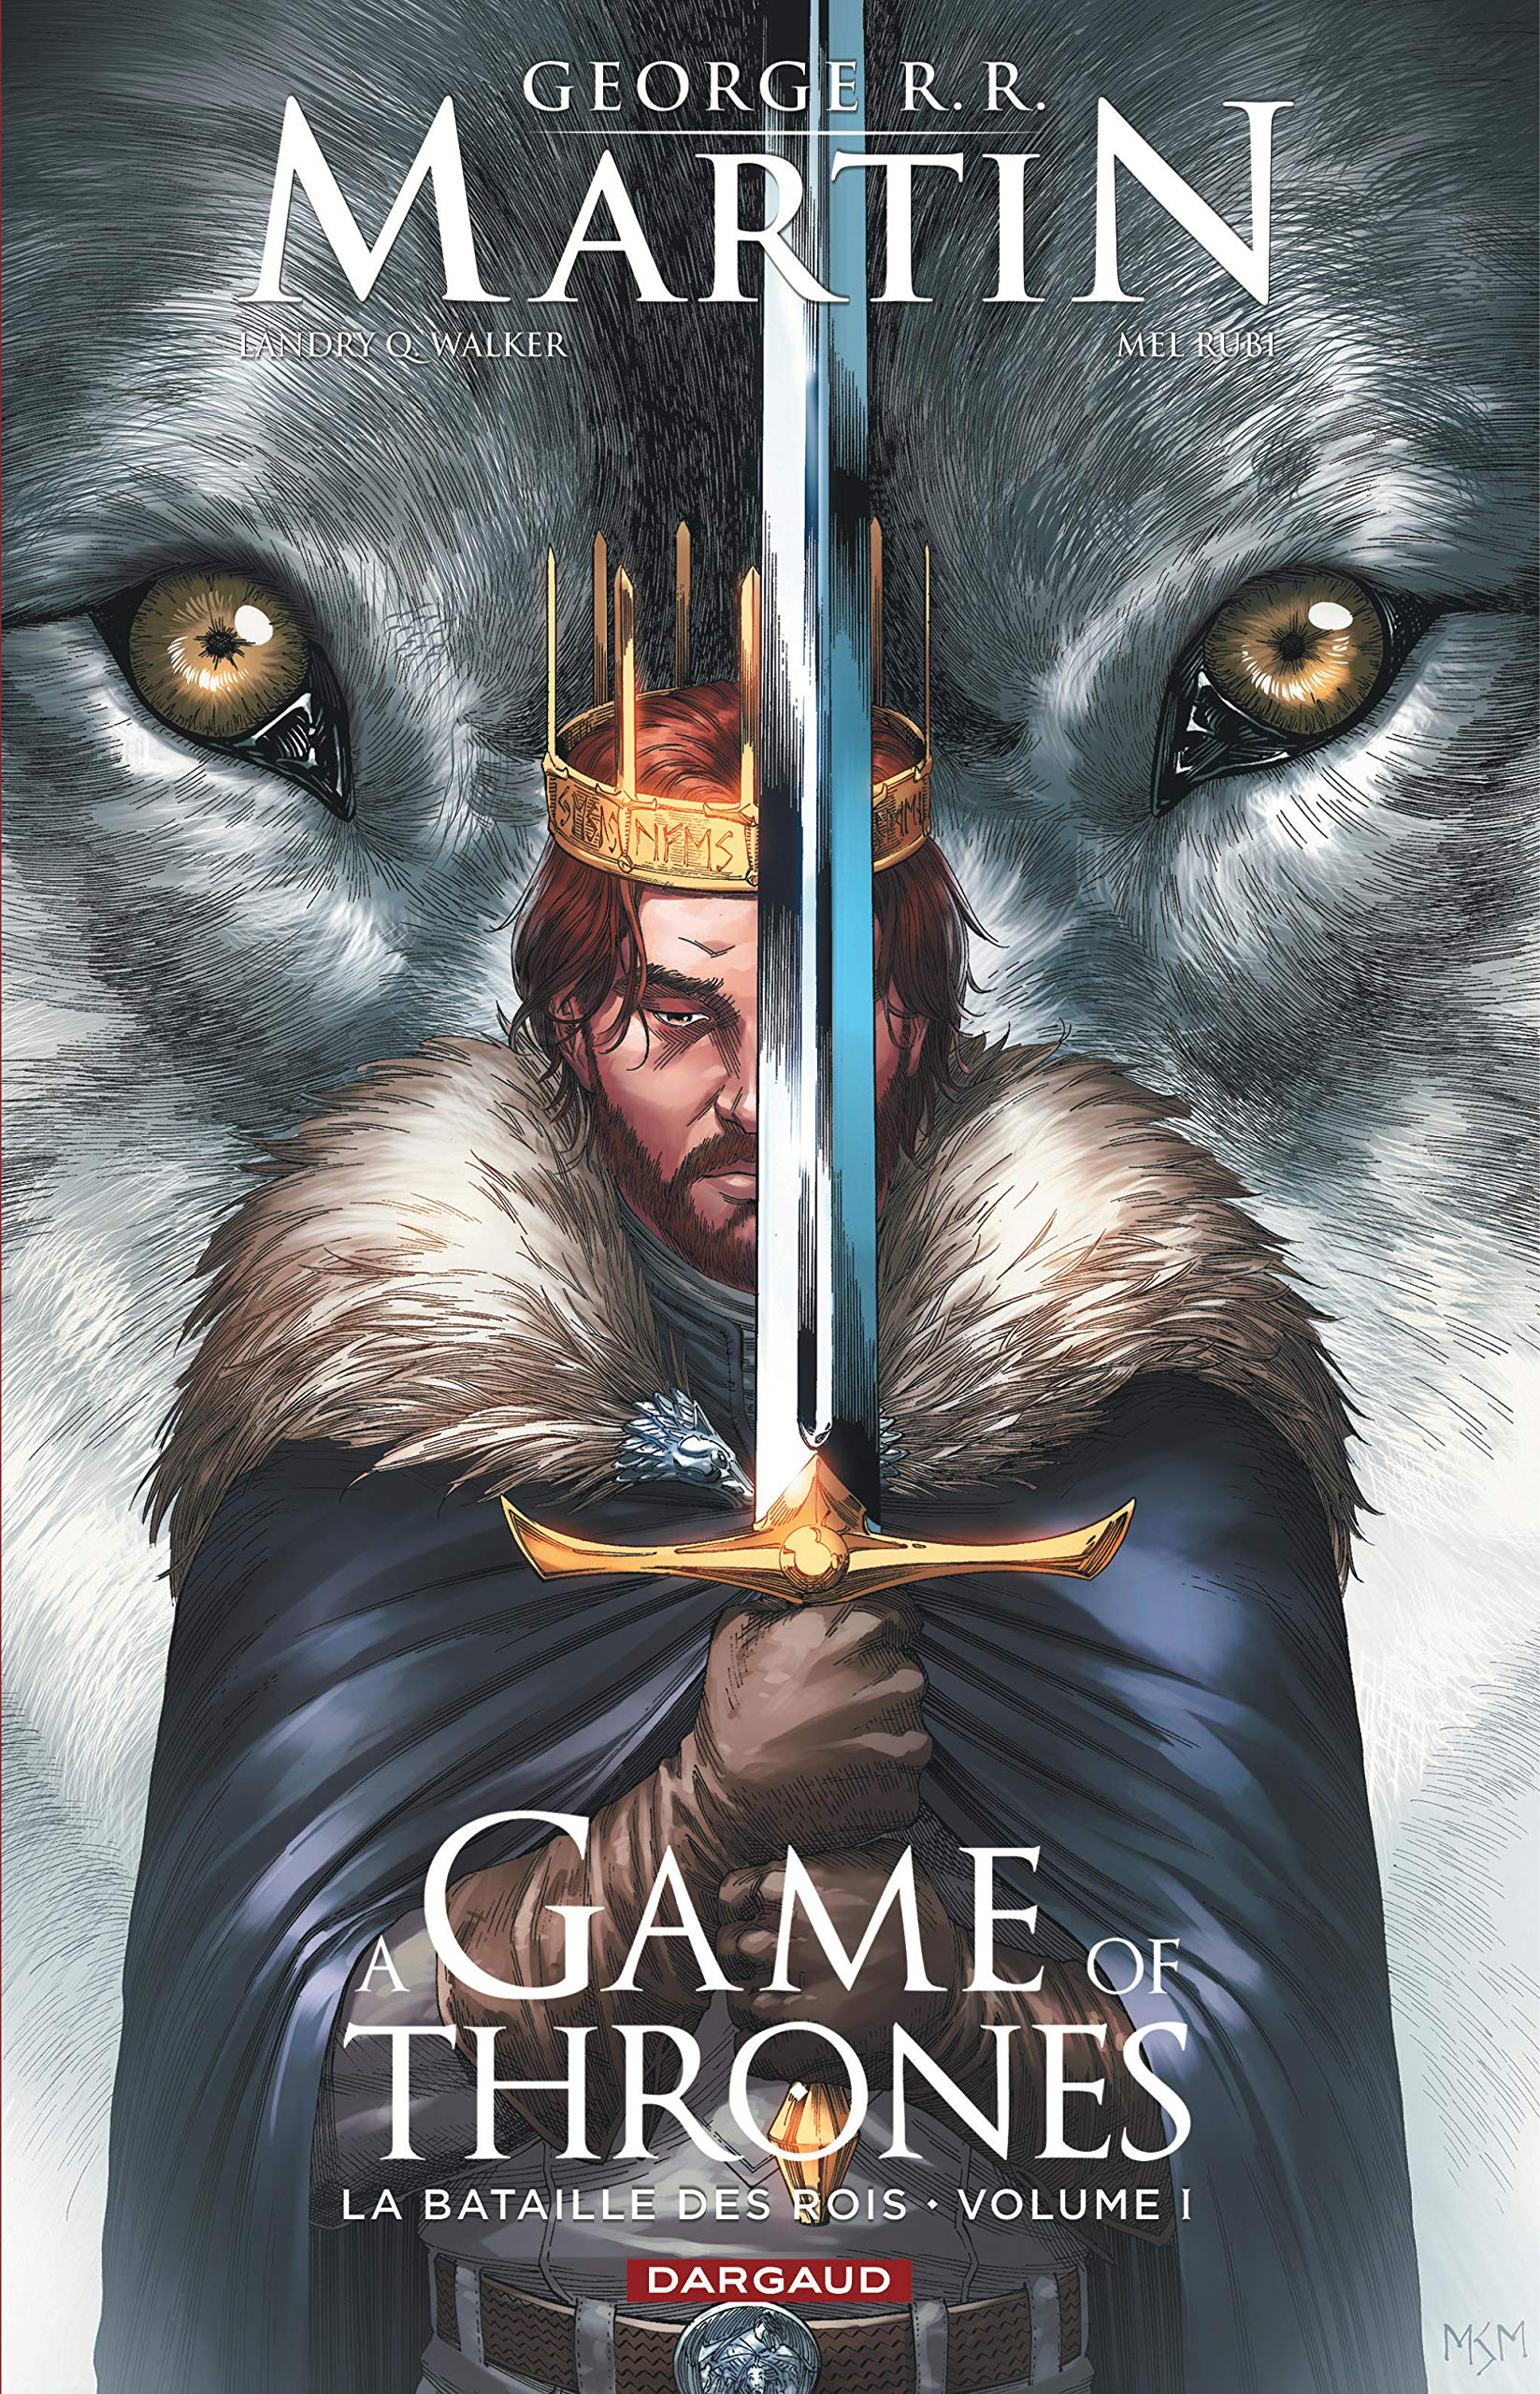 A game of Thrones - La bataille des rois 1 - Tome 1